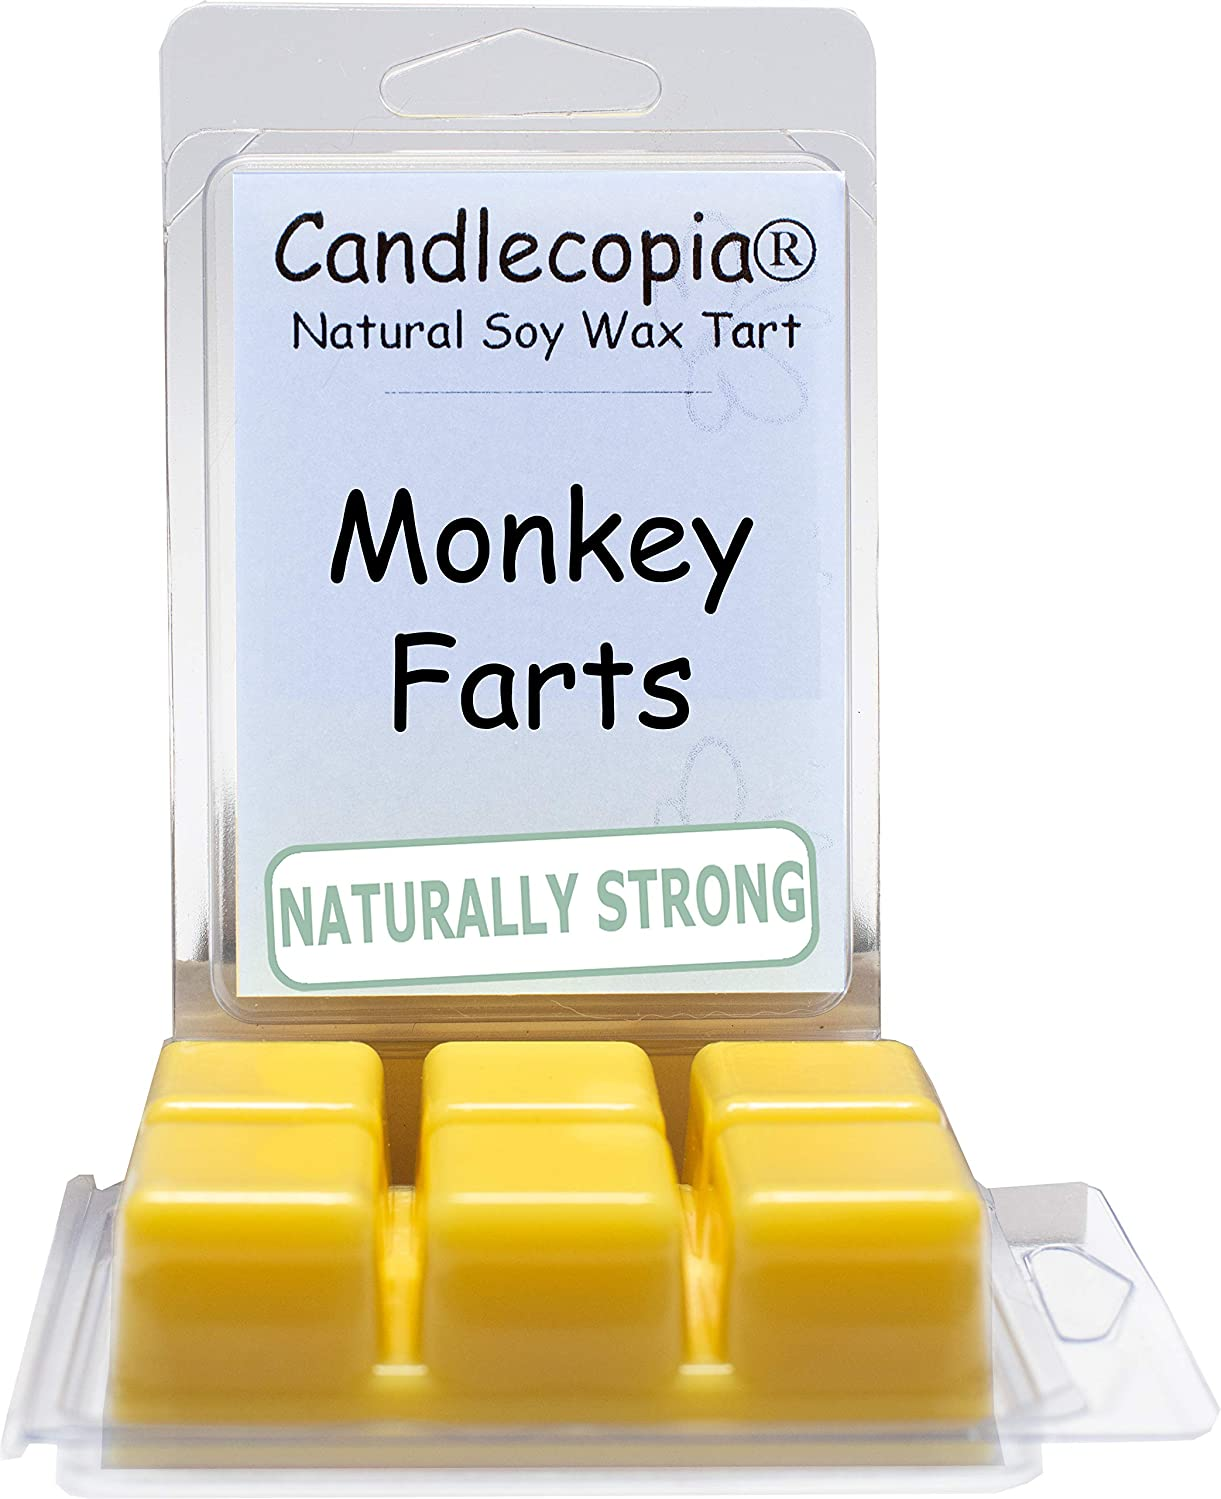 Candlecopia Monkey Farts Strongly Scented Hand Poured Vegan Wax Melts, 12 Scented Wax Cubes, 6.4 Ounces in 2 x 6-Packs gizhufhklonrsd